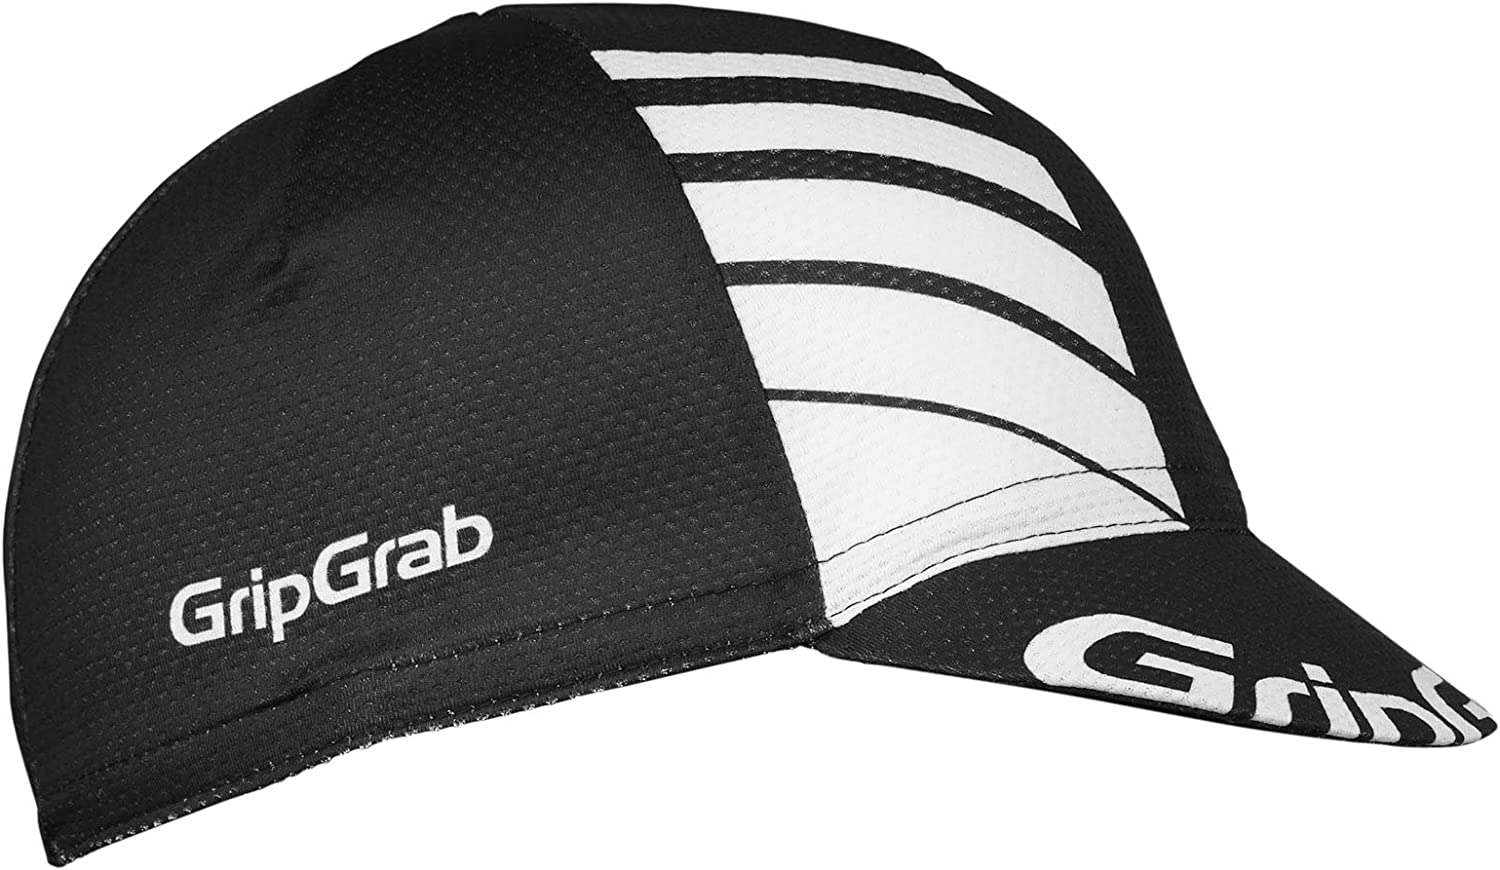 2x NFTO Black Lightweight Cycling Cap Summer Weight Cycling Hat TWO CAPS